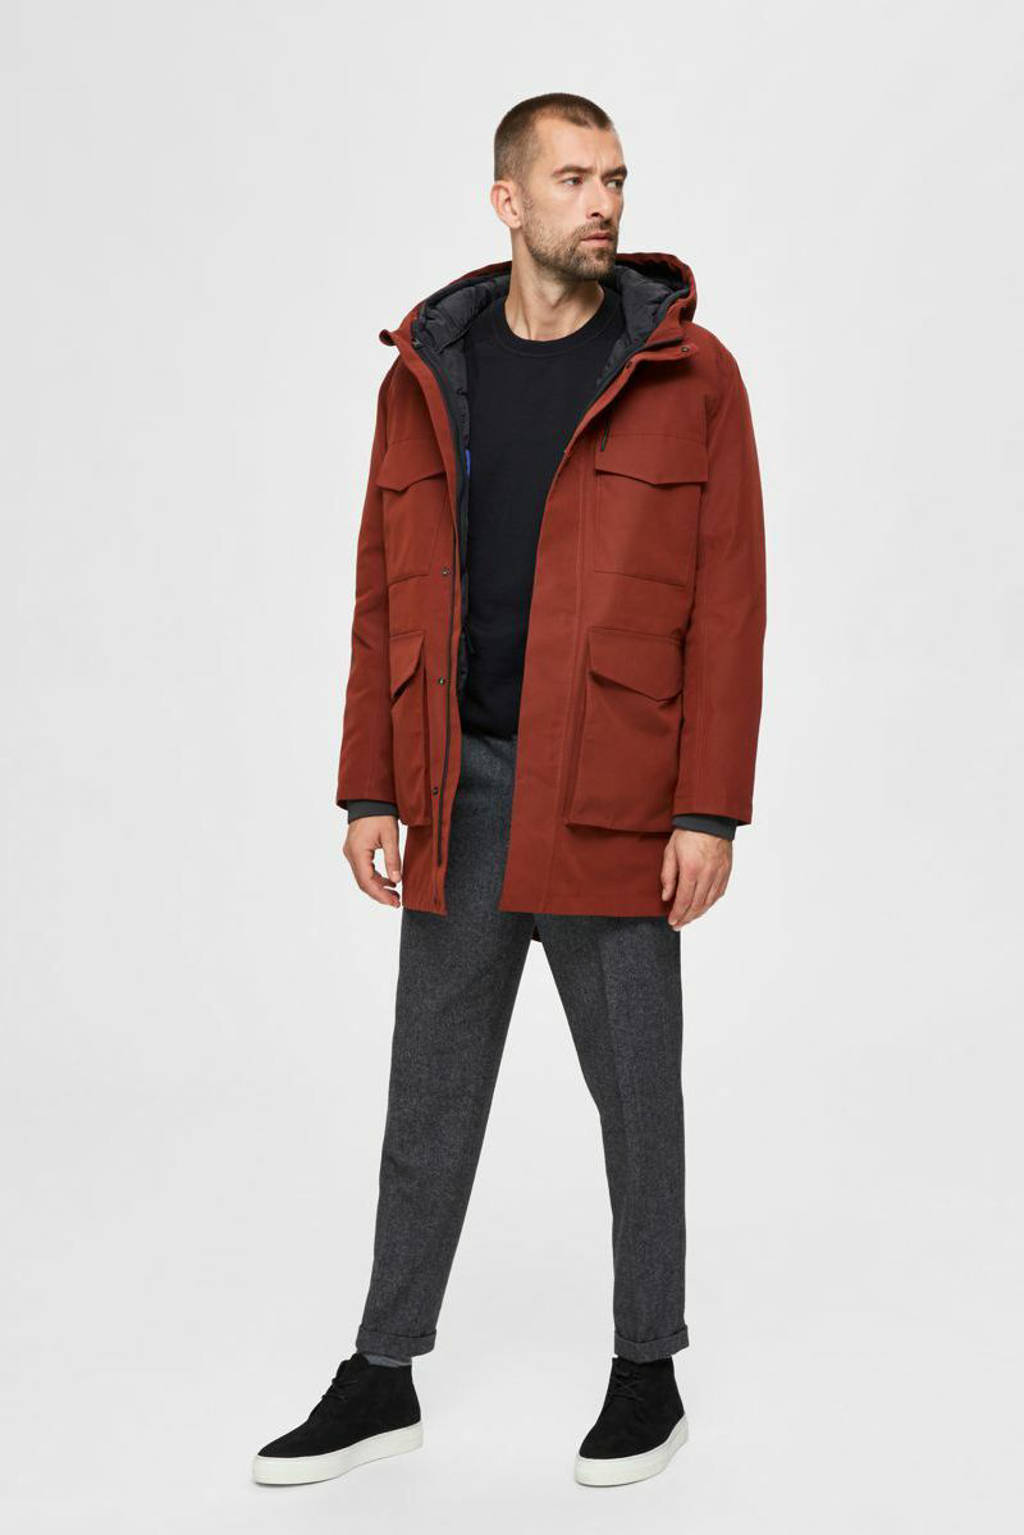 SELECTED HOMME parka donkerrood, Donkerrood